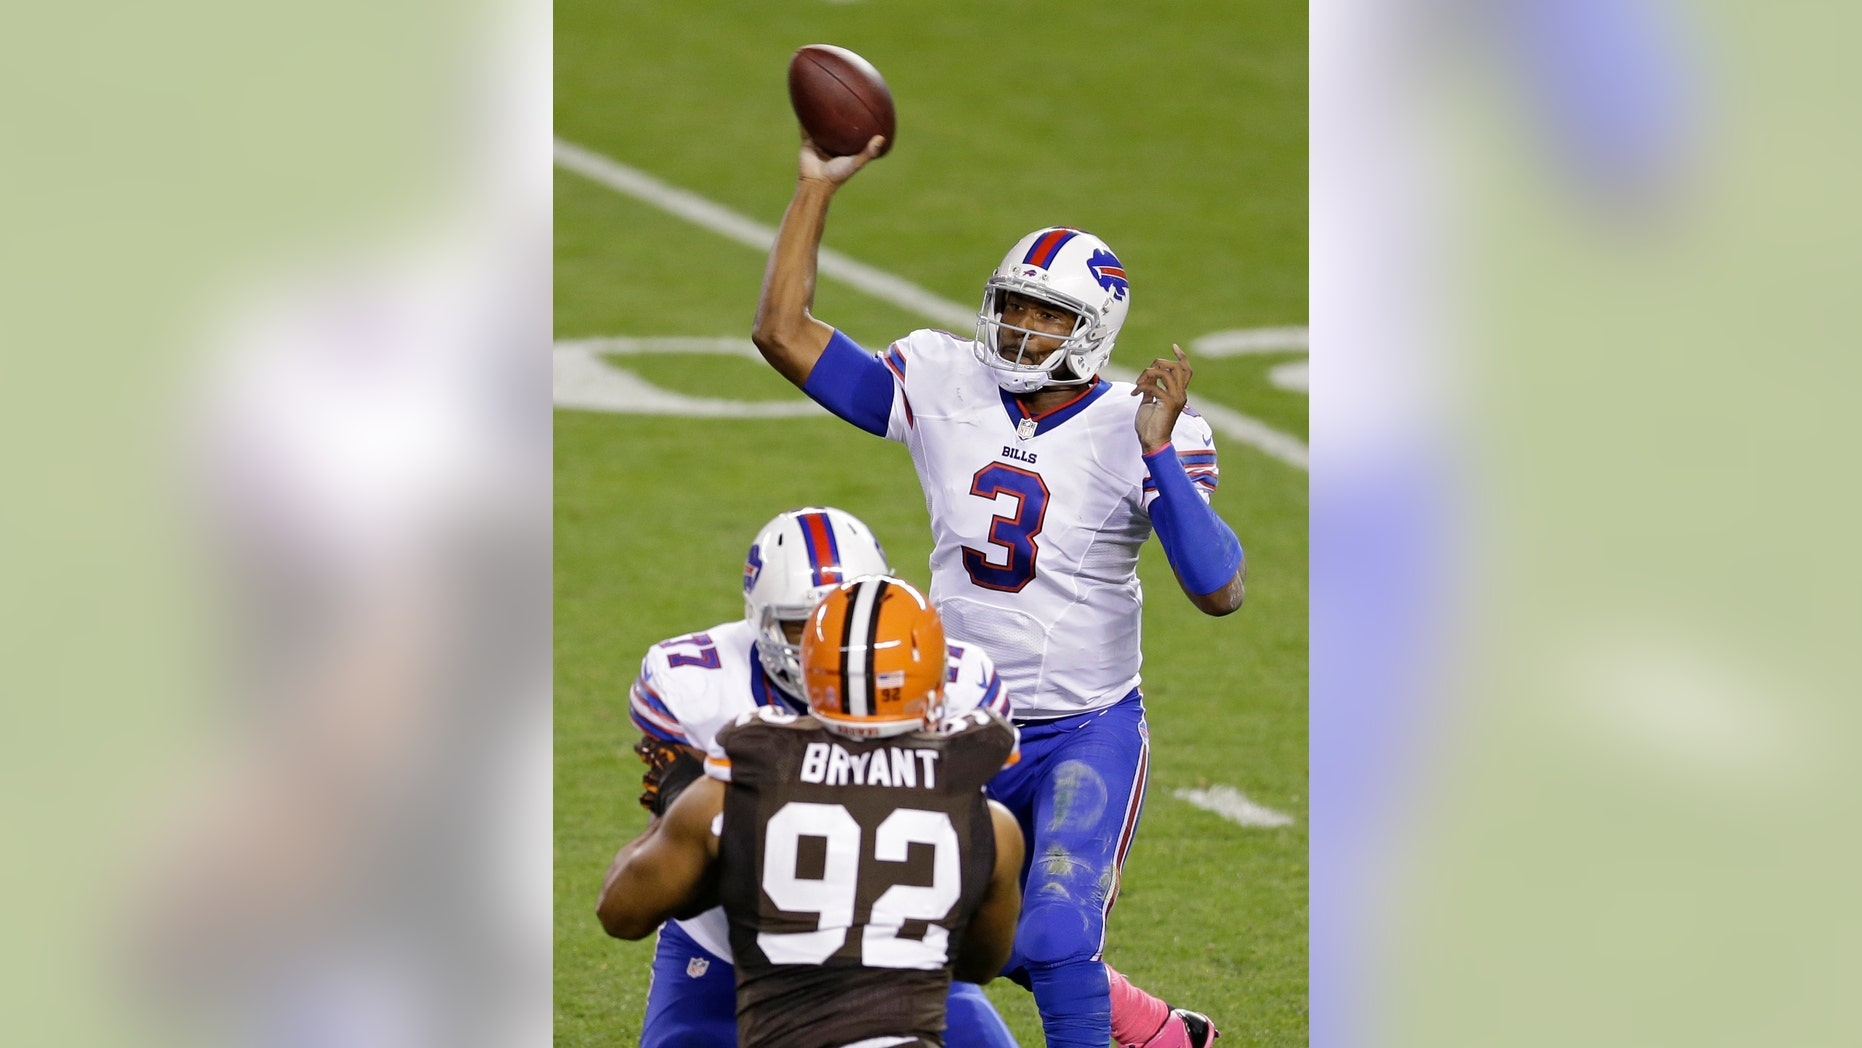 Buffalo Bills quarterback EJ Manuel (3) passes against the Cleveland Browns in the second quarter of an NFL football game Thursday, Oct. 3, 2013, in Cleveland. (AP Photo/Tony Dejak)